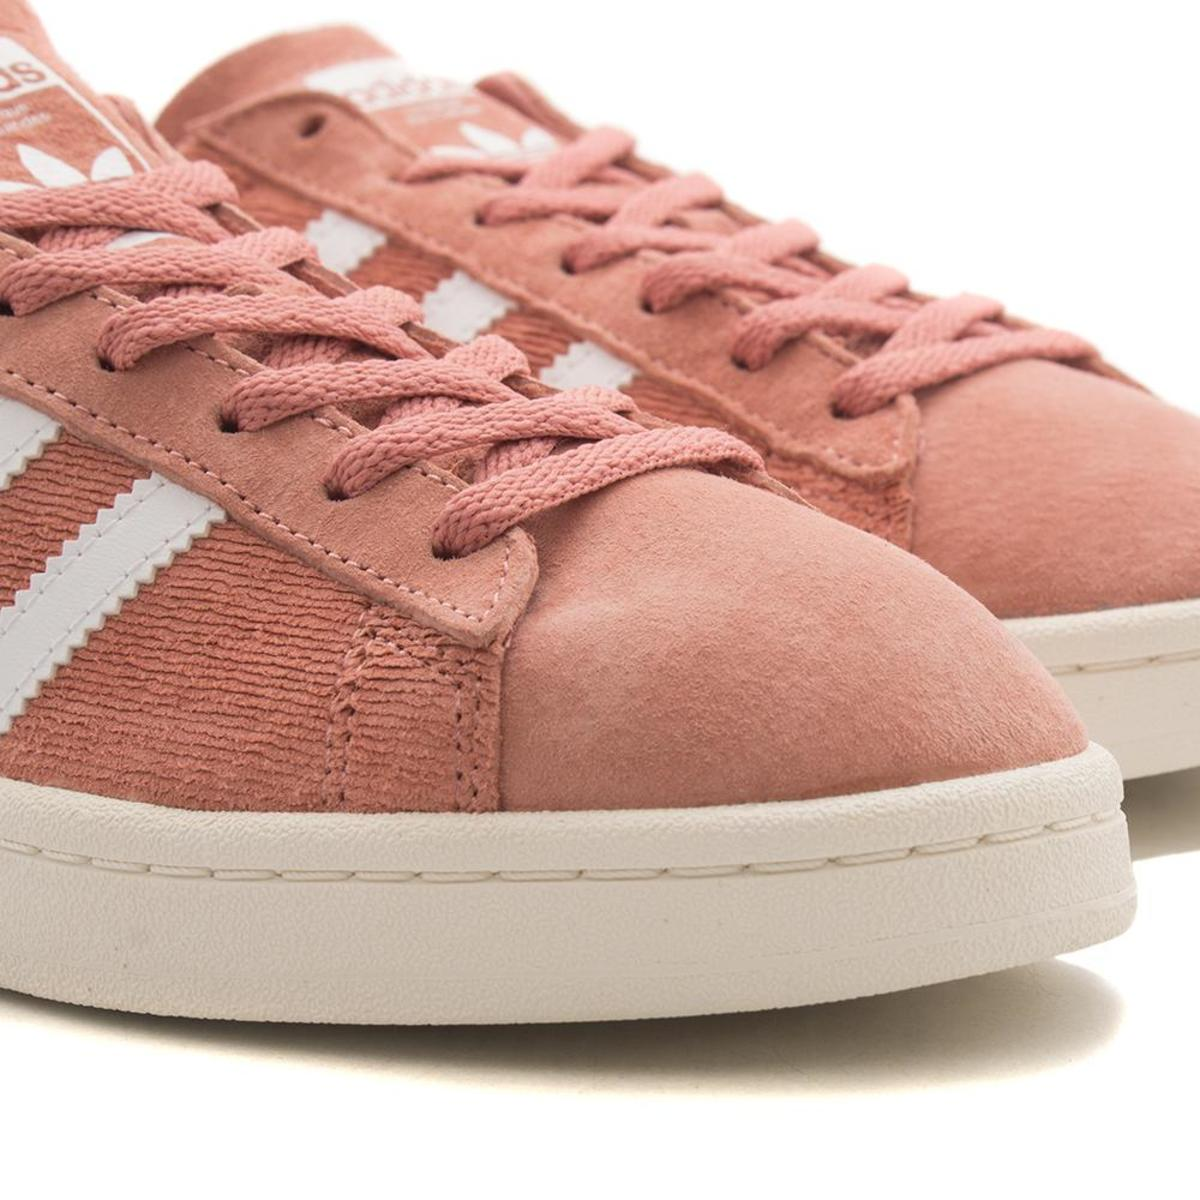 Adidas Campus RAW garmentory rosa